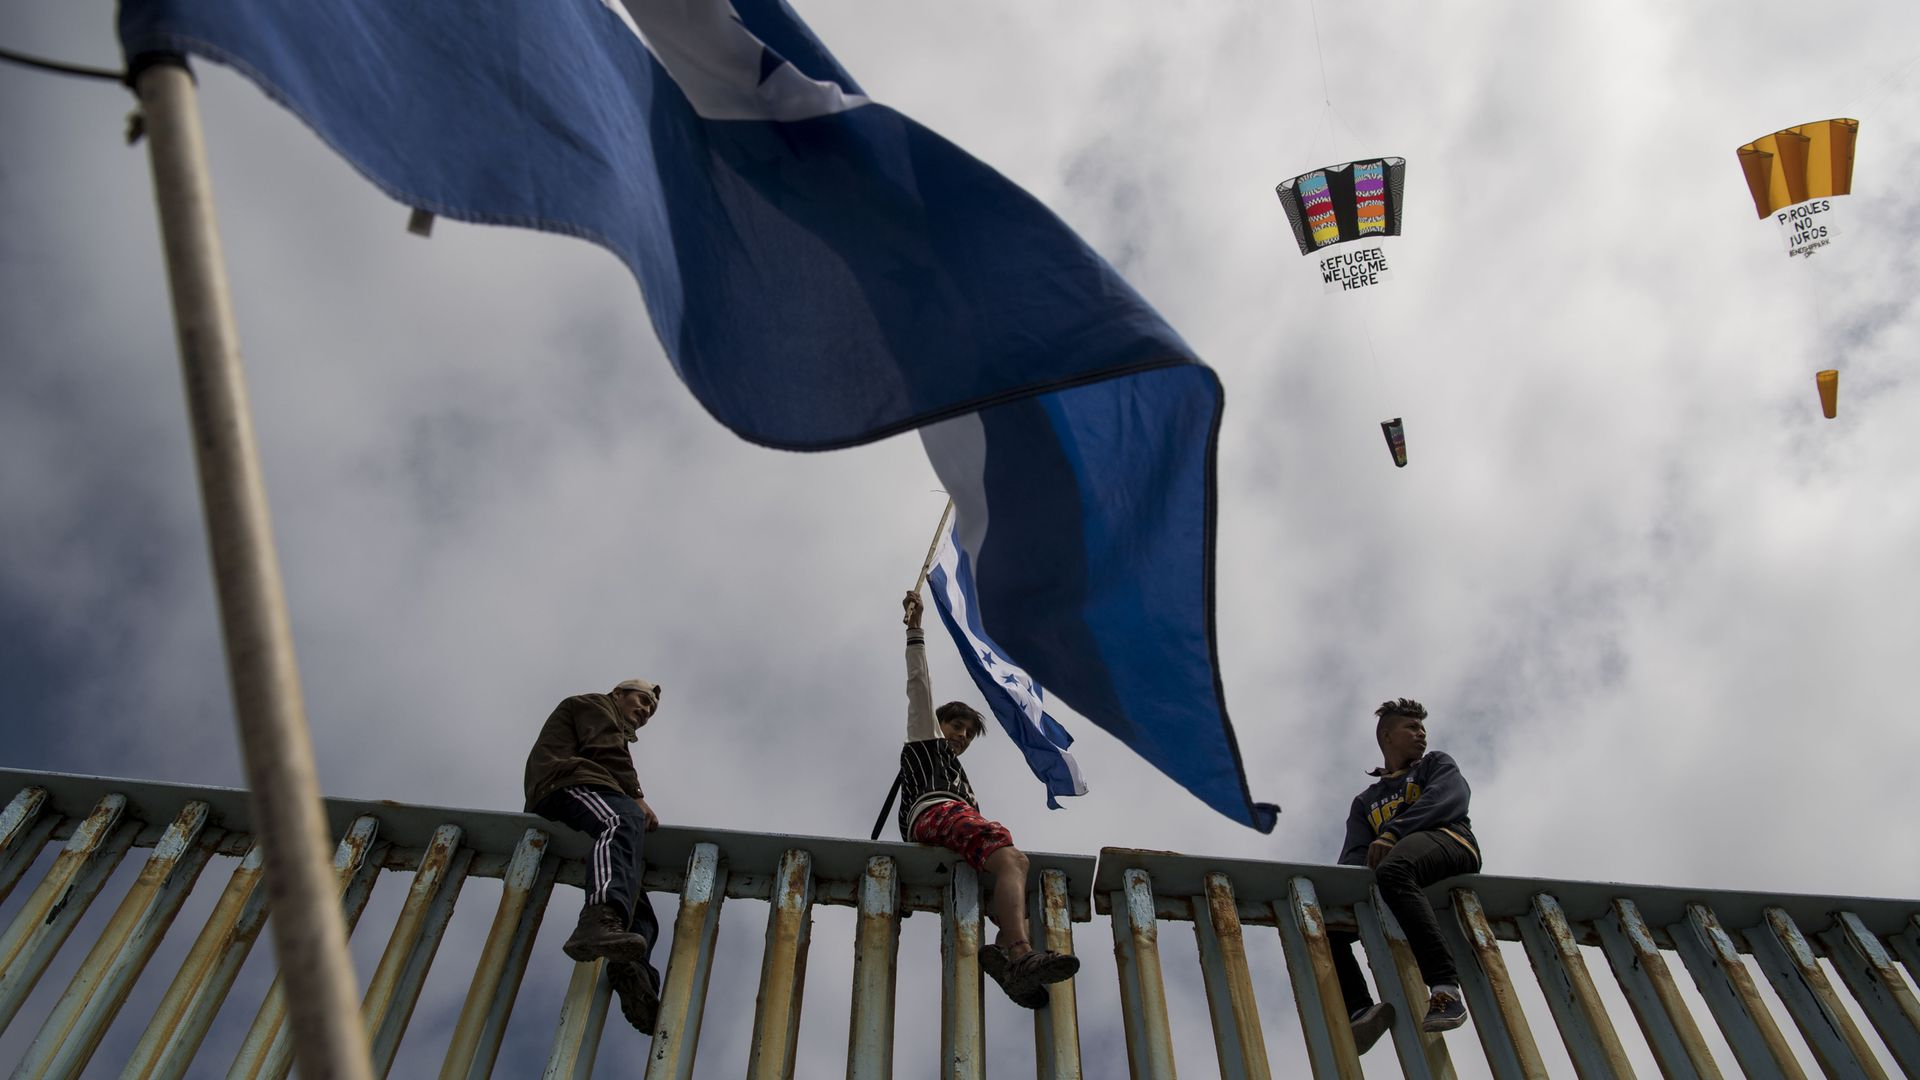 Three immigrants from Central America sit on top of the border wall with a flag flying in the foreground.